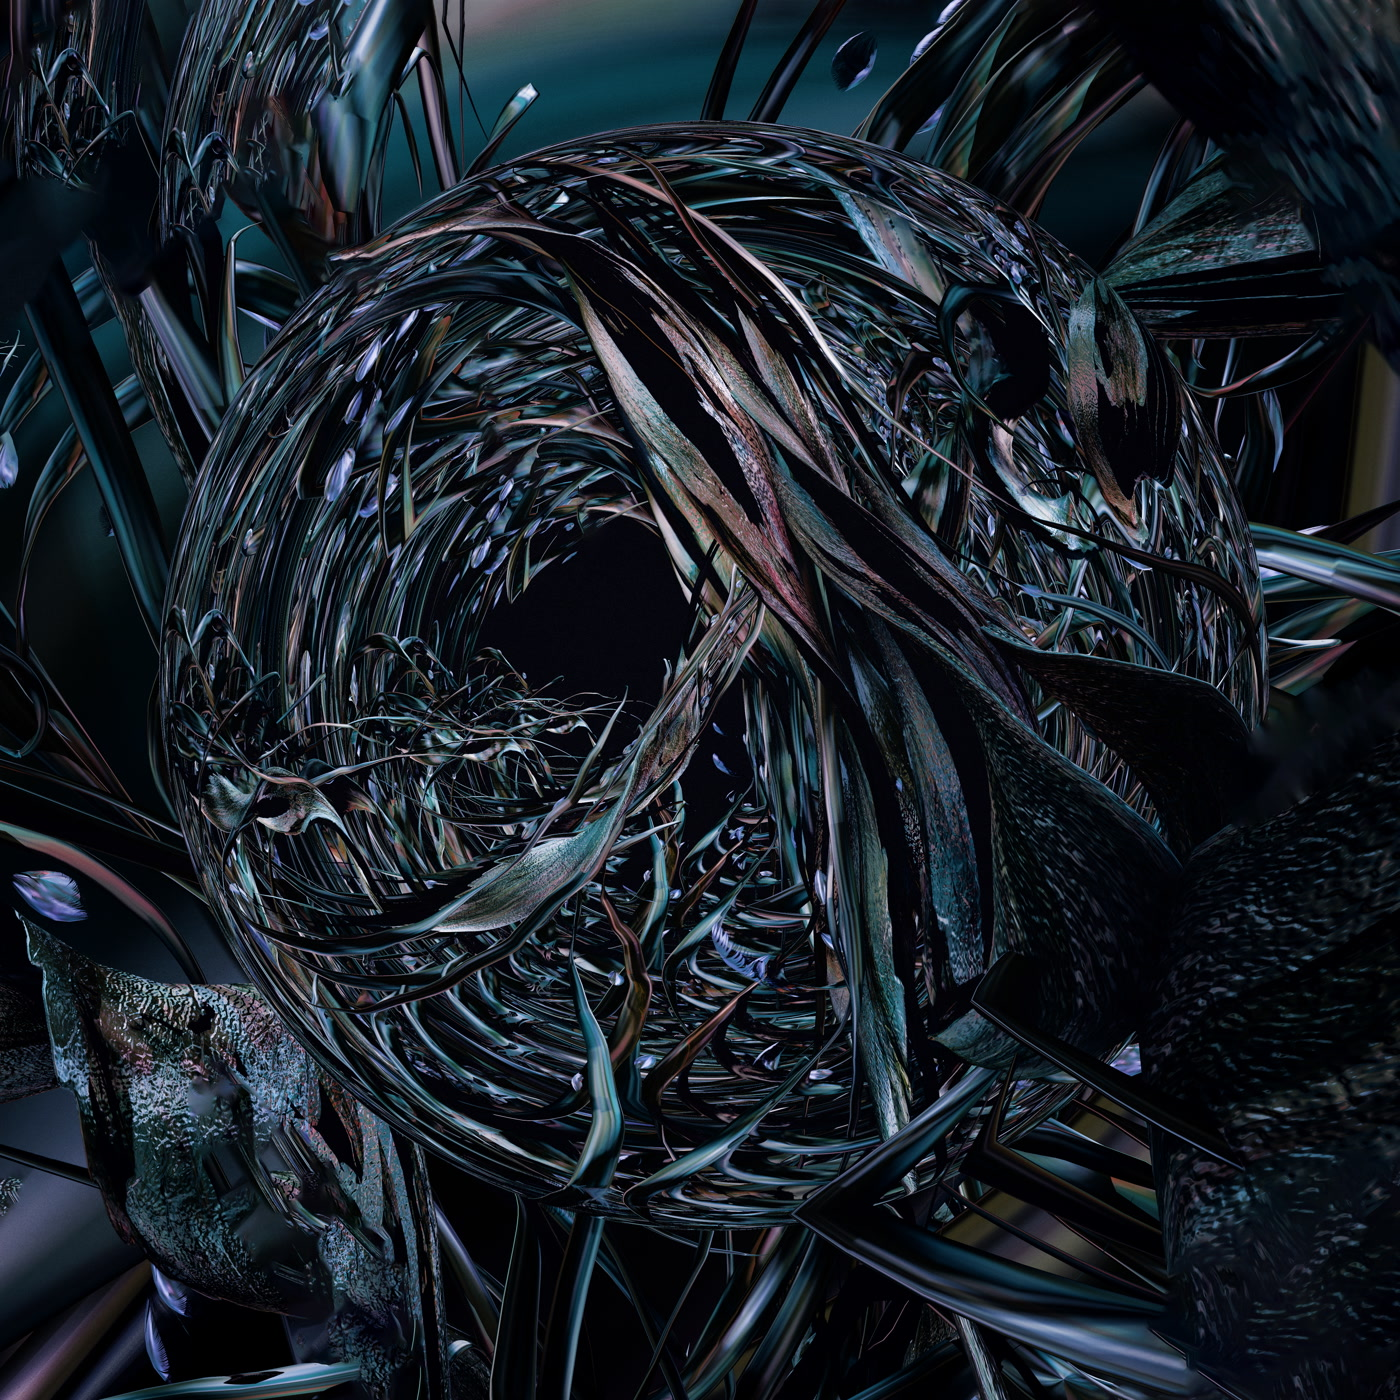 Aquarian – The Snake That Eats Itself (Bedouin Records)